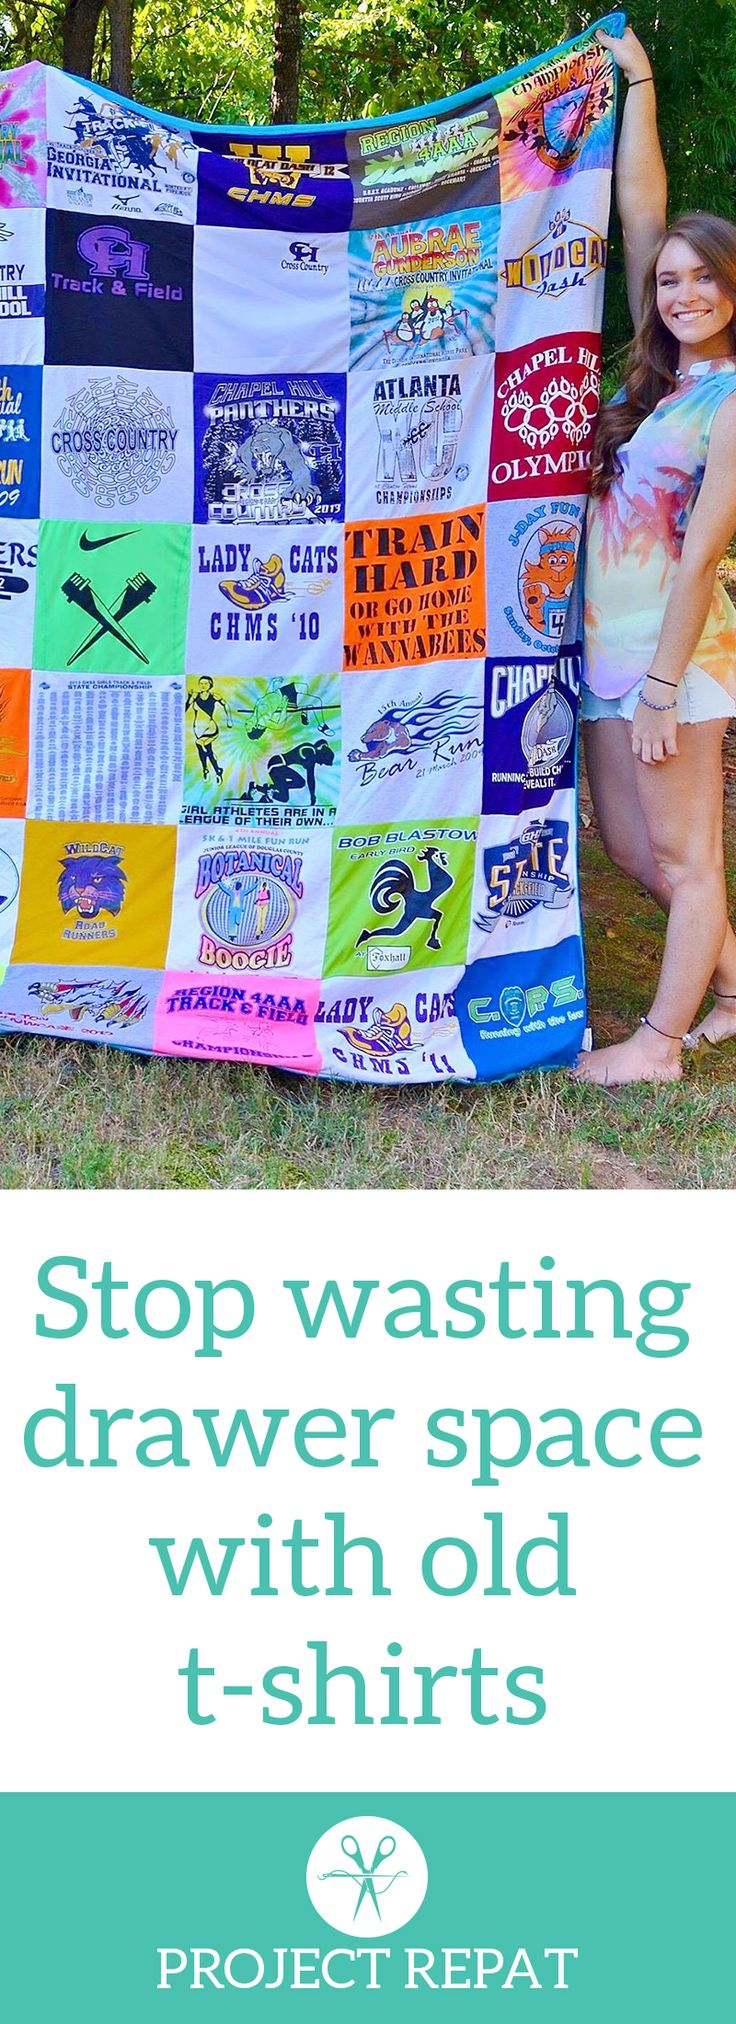 Every t-shirt quilt has a unique story to tell — what will yours say? Learn more about how you can turn t-shirts into a great conversation starter with Project Repat. https://www.projectrepat.com/?utm_source=Pinterest&utm_medium=3.2P